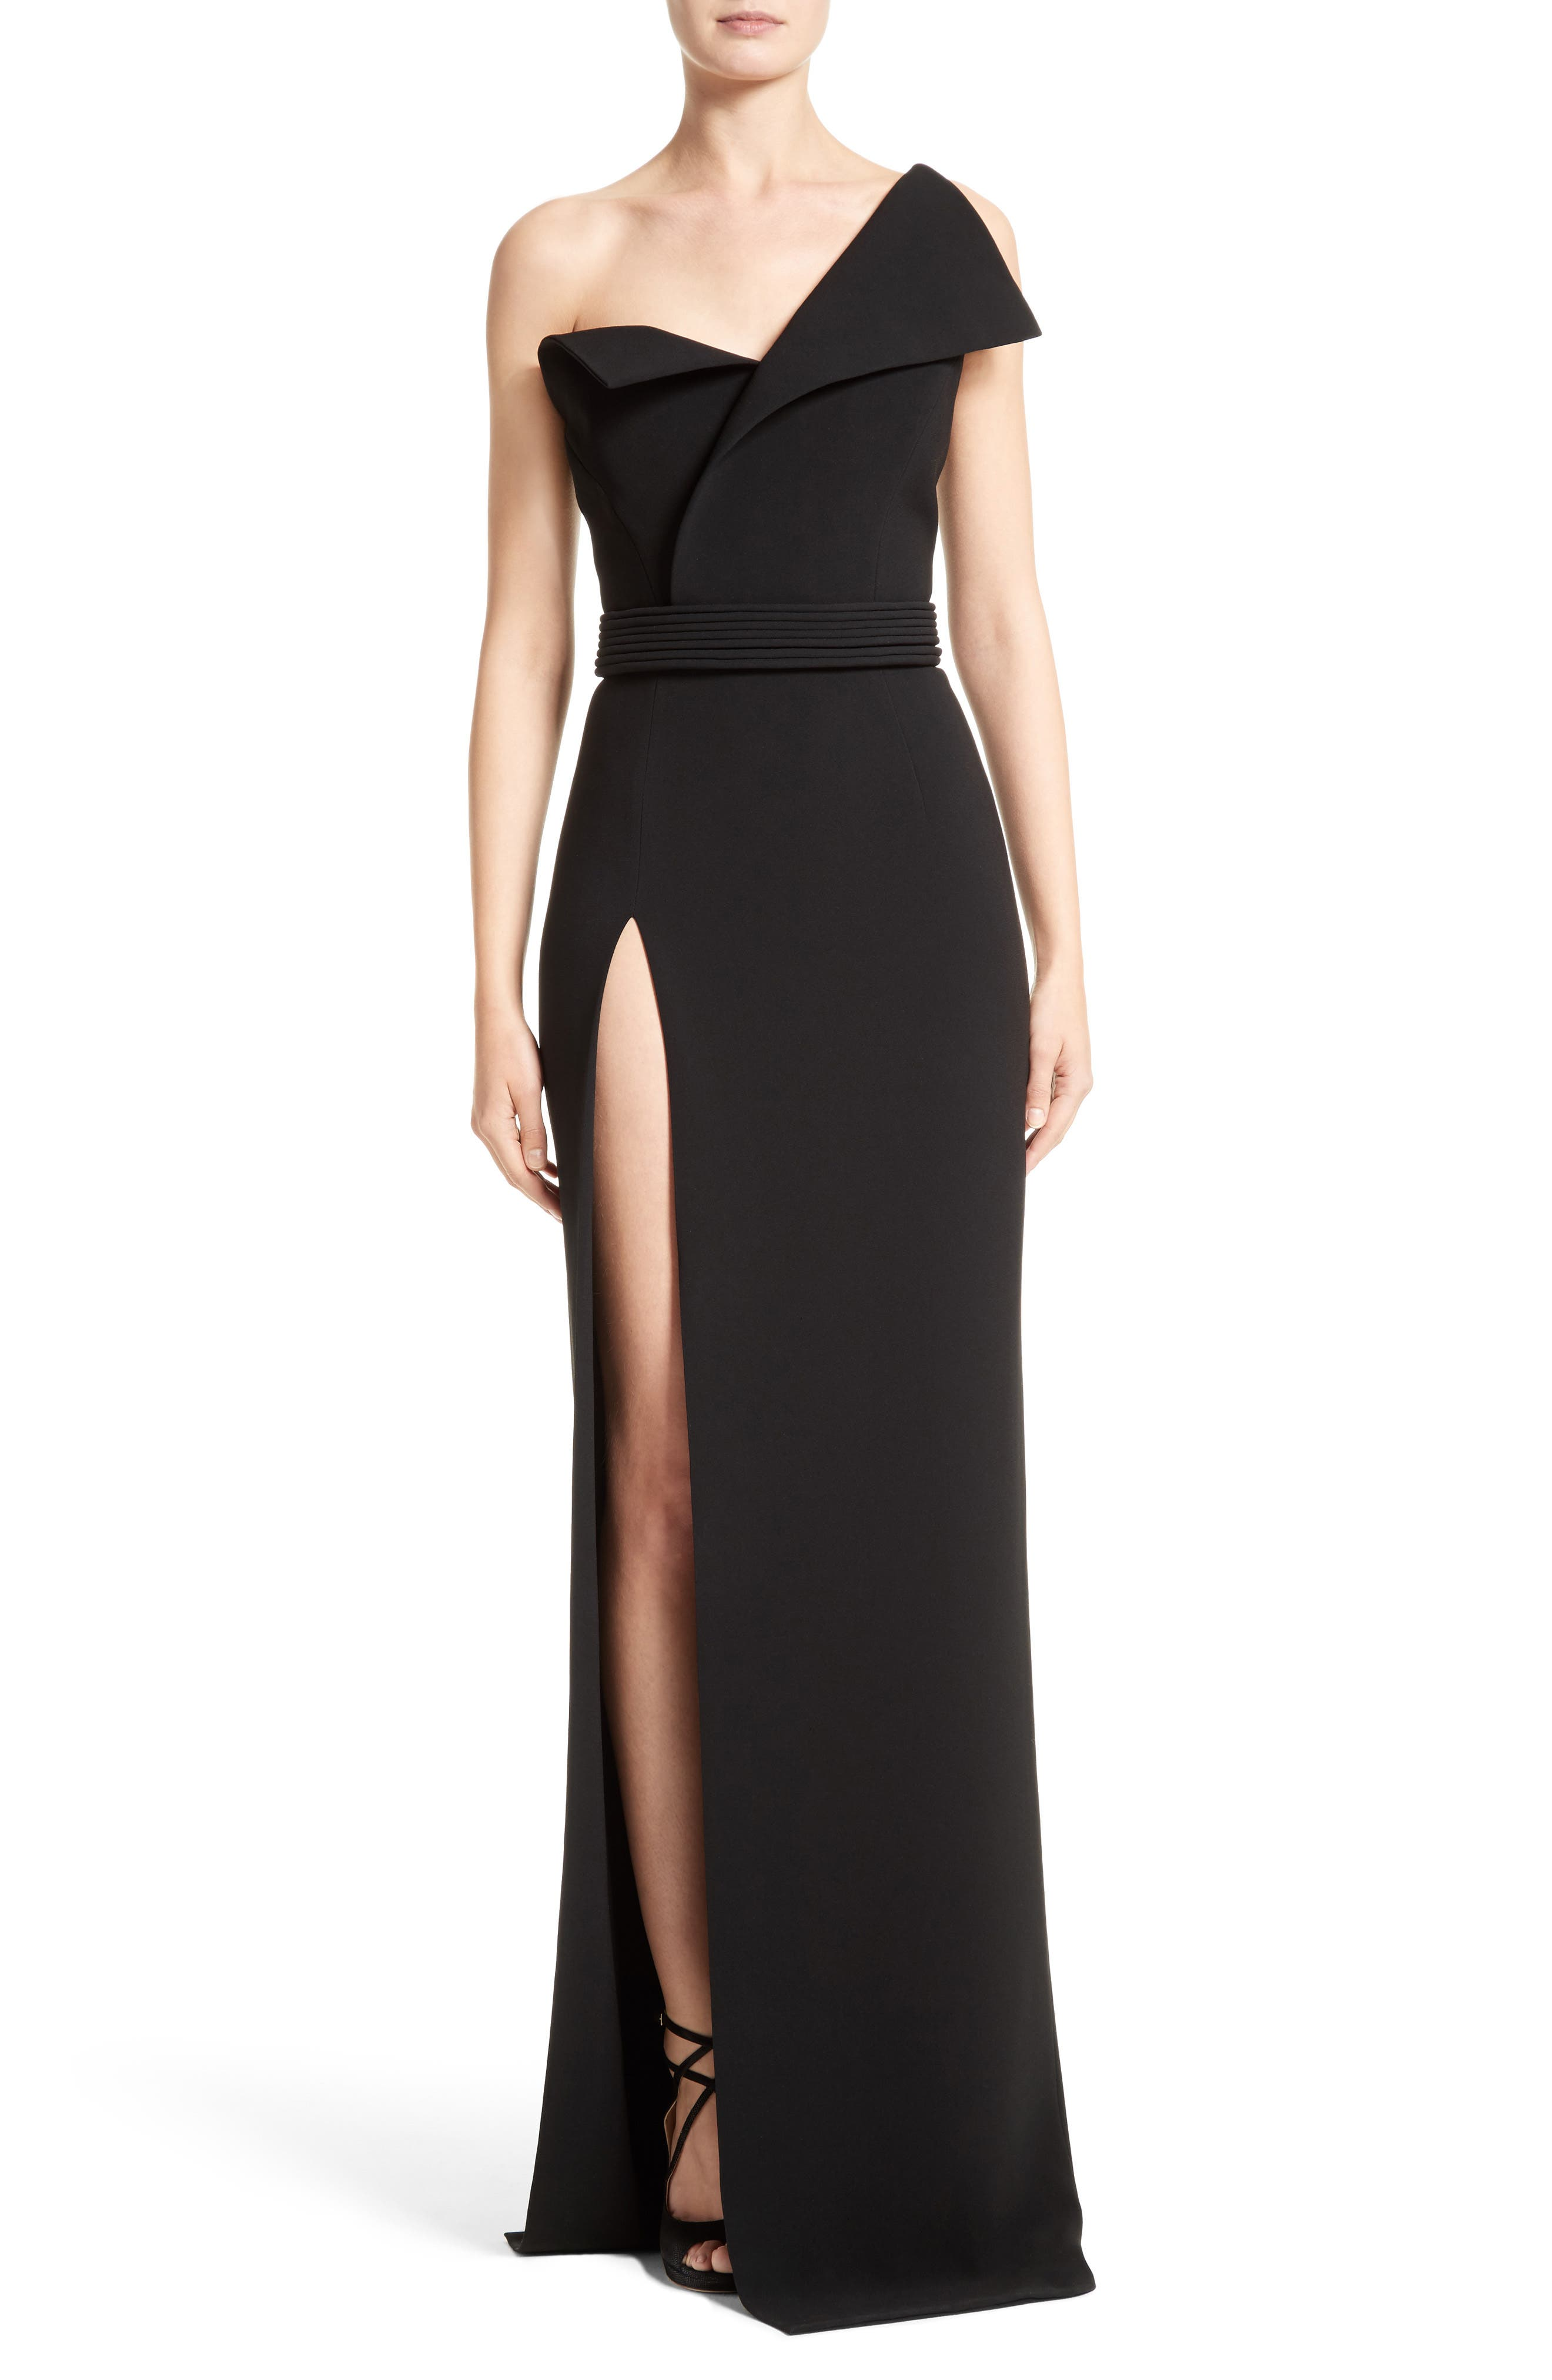 Brandon Maxwell Belted Foldover Neck Gown with High Slit